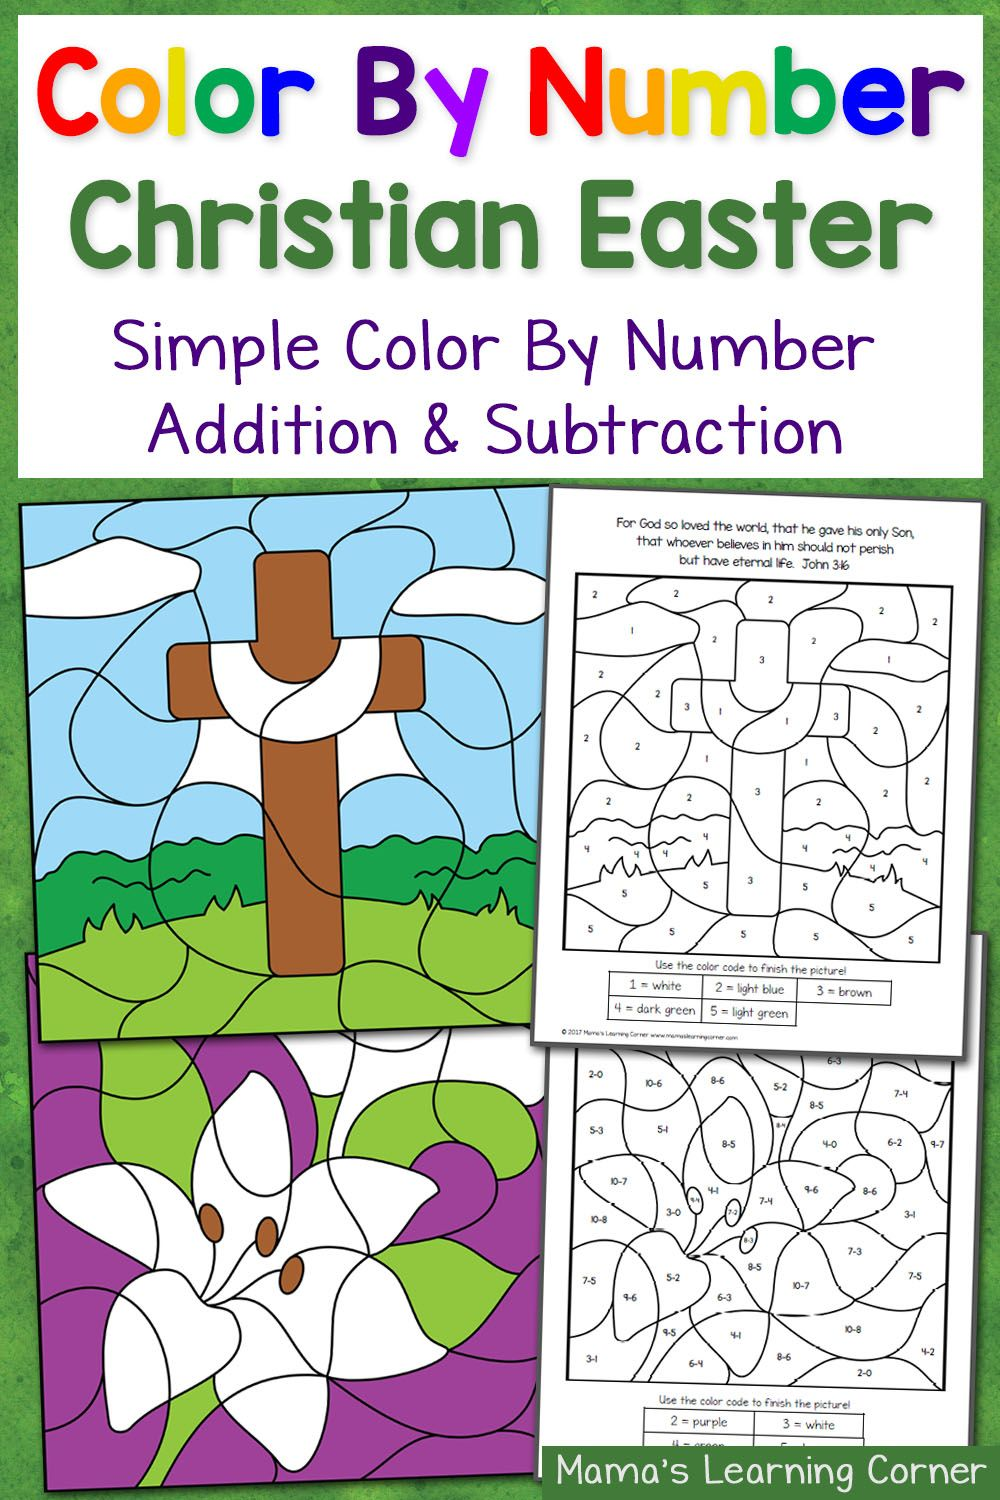 6 page set of christian easter color by number worksheets simple addition and color - Simple Color Number Printables